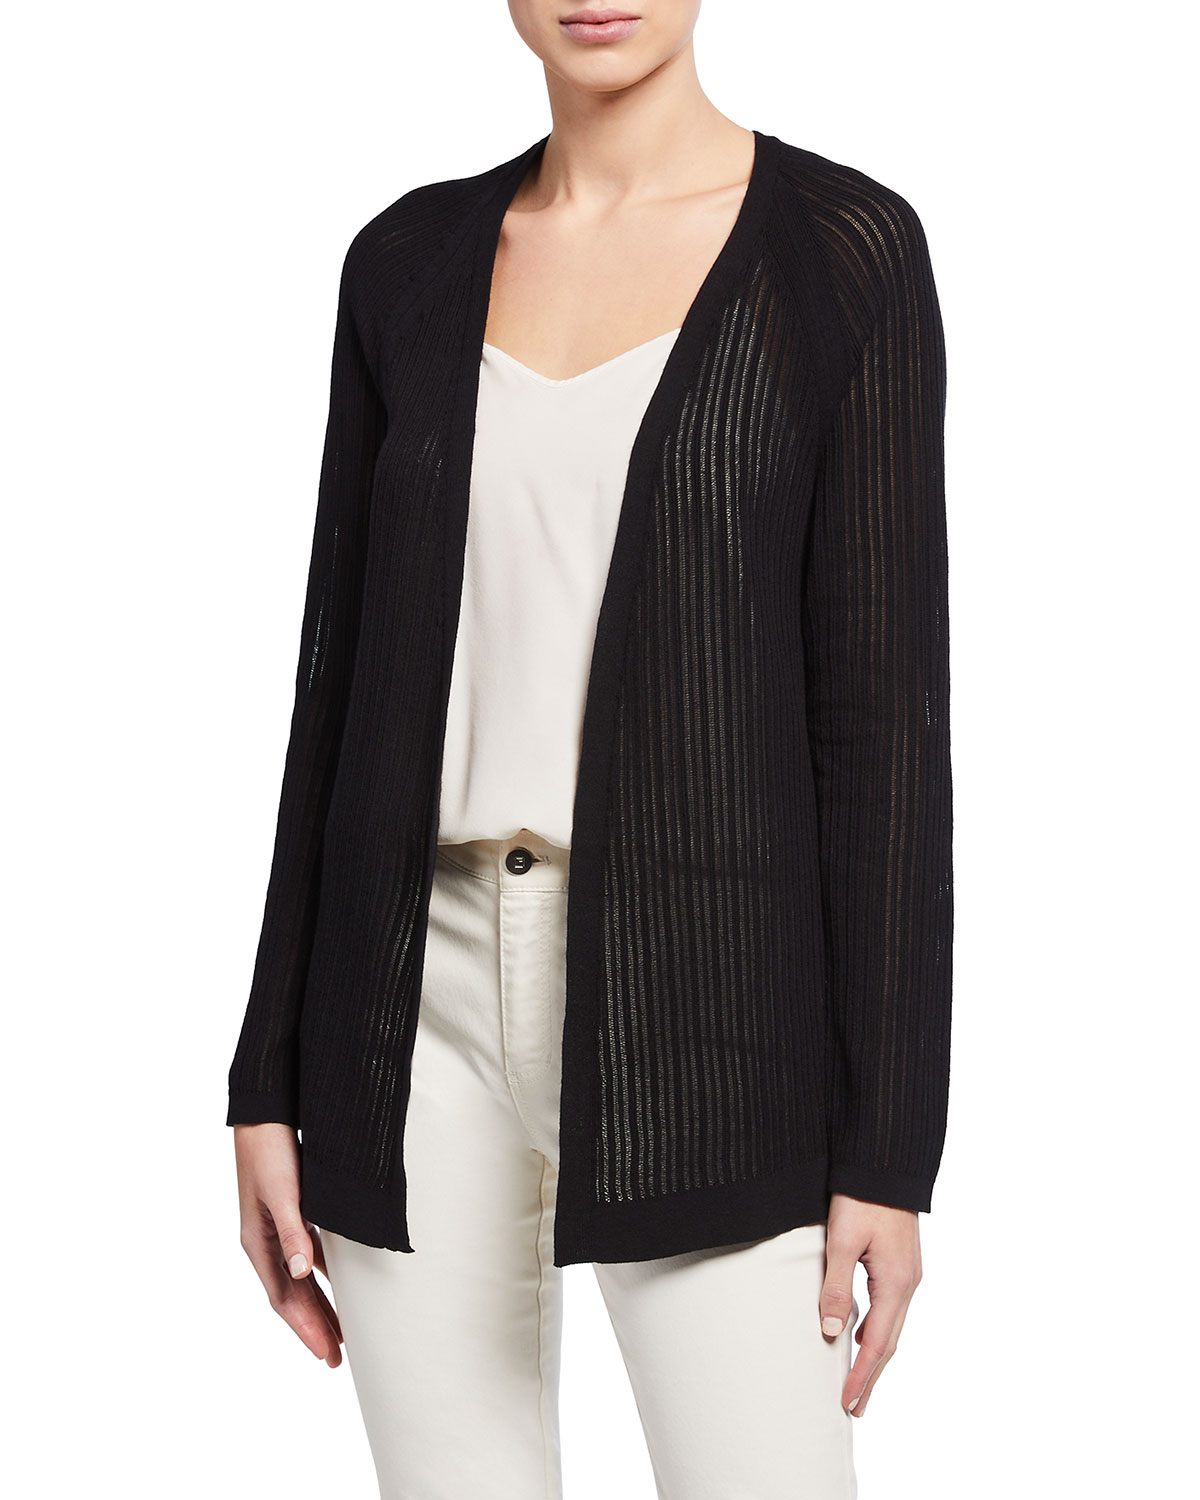 Eileen Fisher Plus Size Organic Cotton Stretch Rib Textured Cardigan